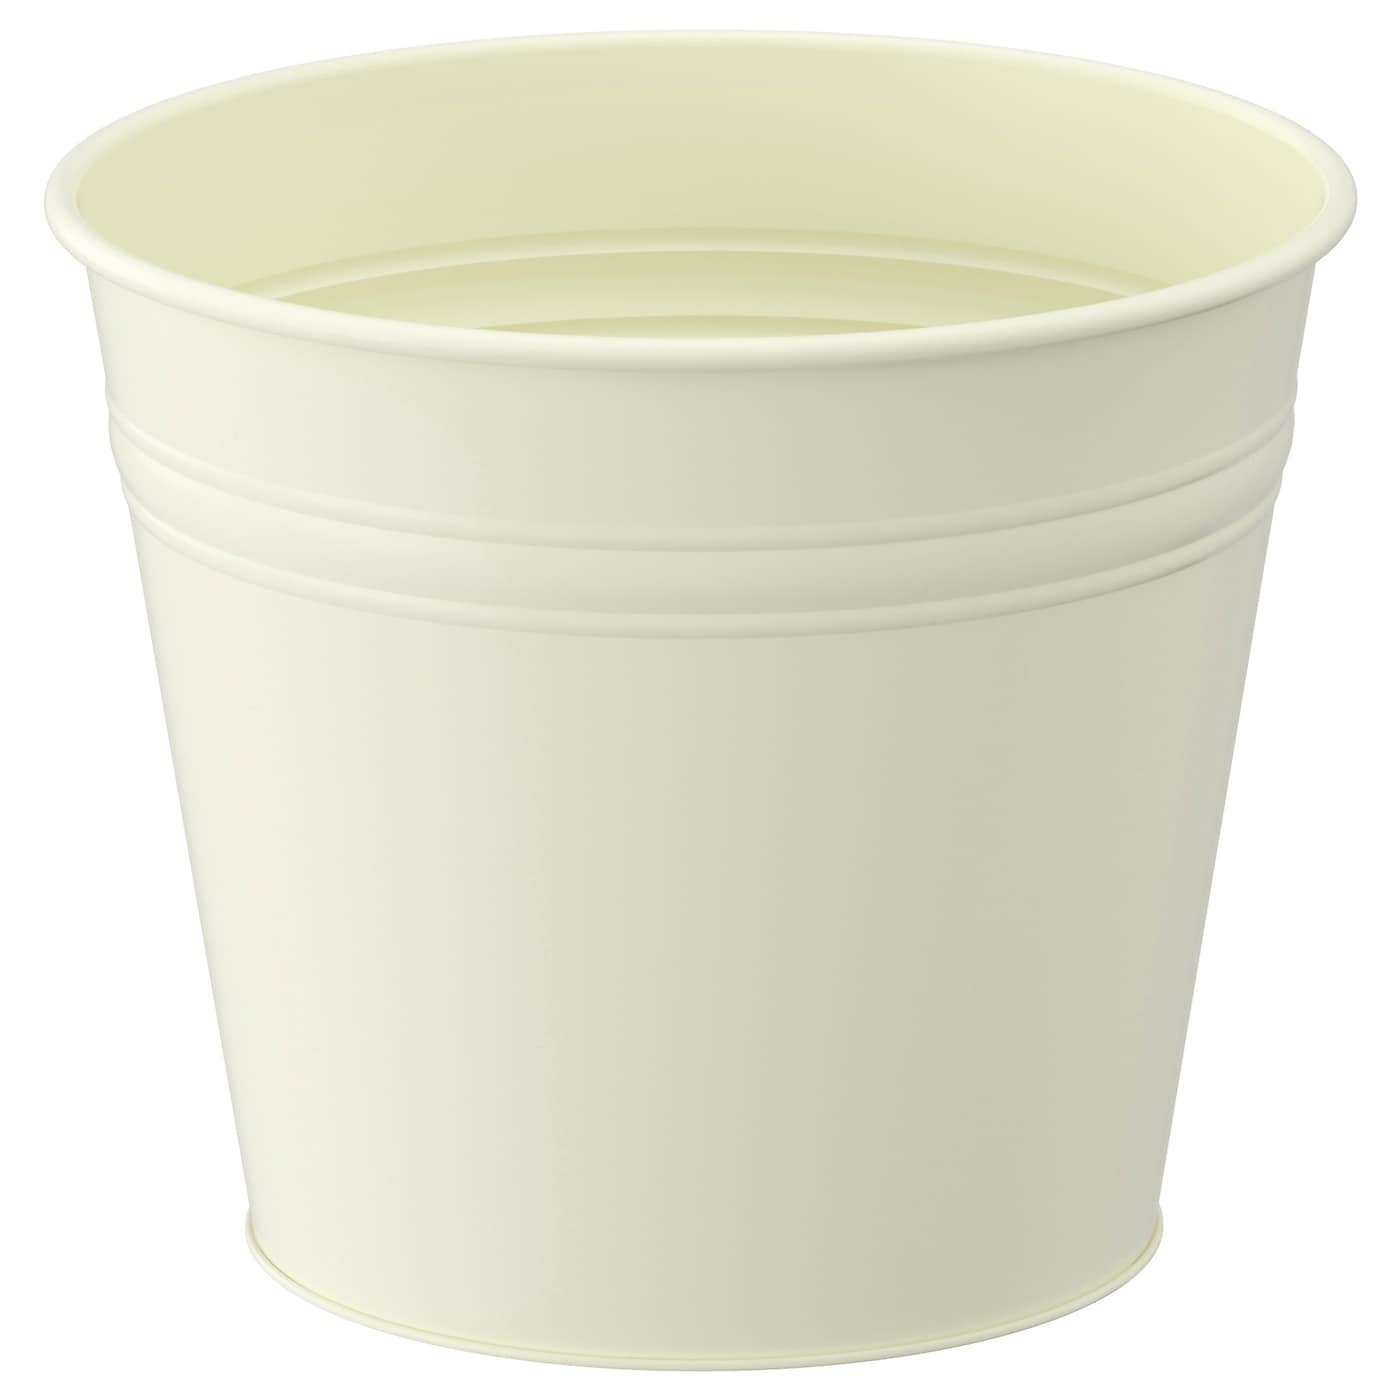 IKEA SOCKER plant pot Decorate your home with plants combined with a plant pot to suit your style.